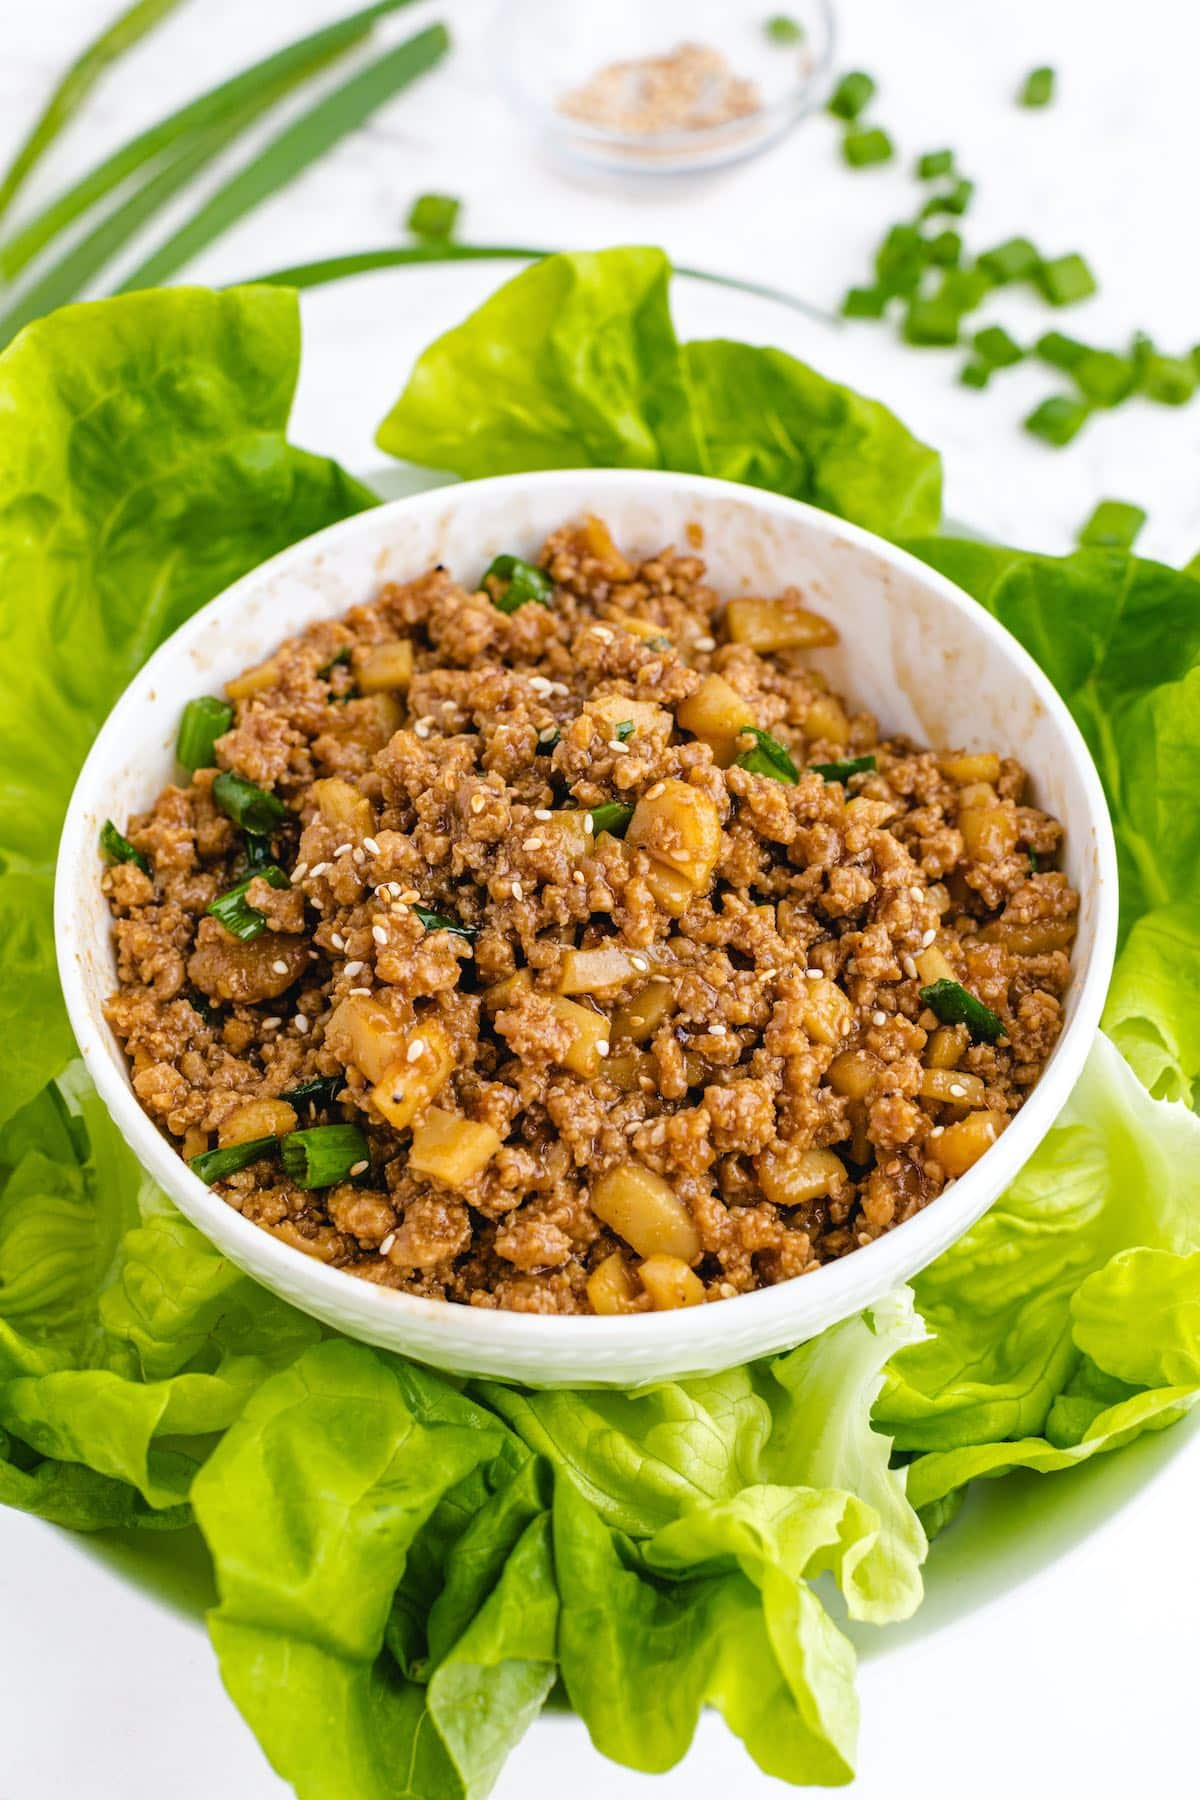 saute chicken in a bowl surrounded by lettuce leaves